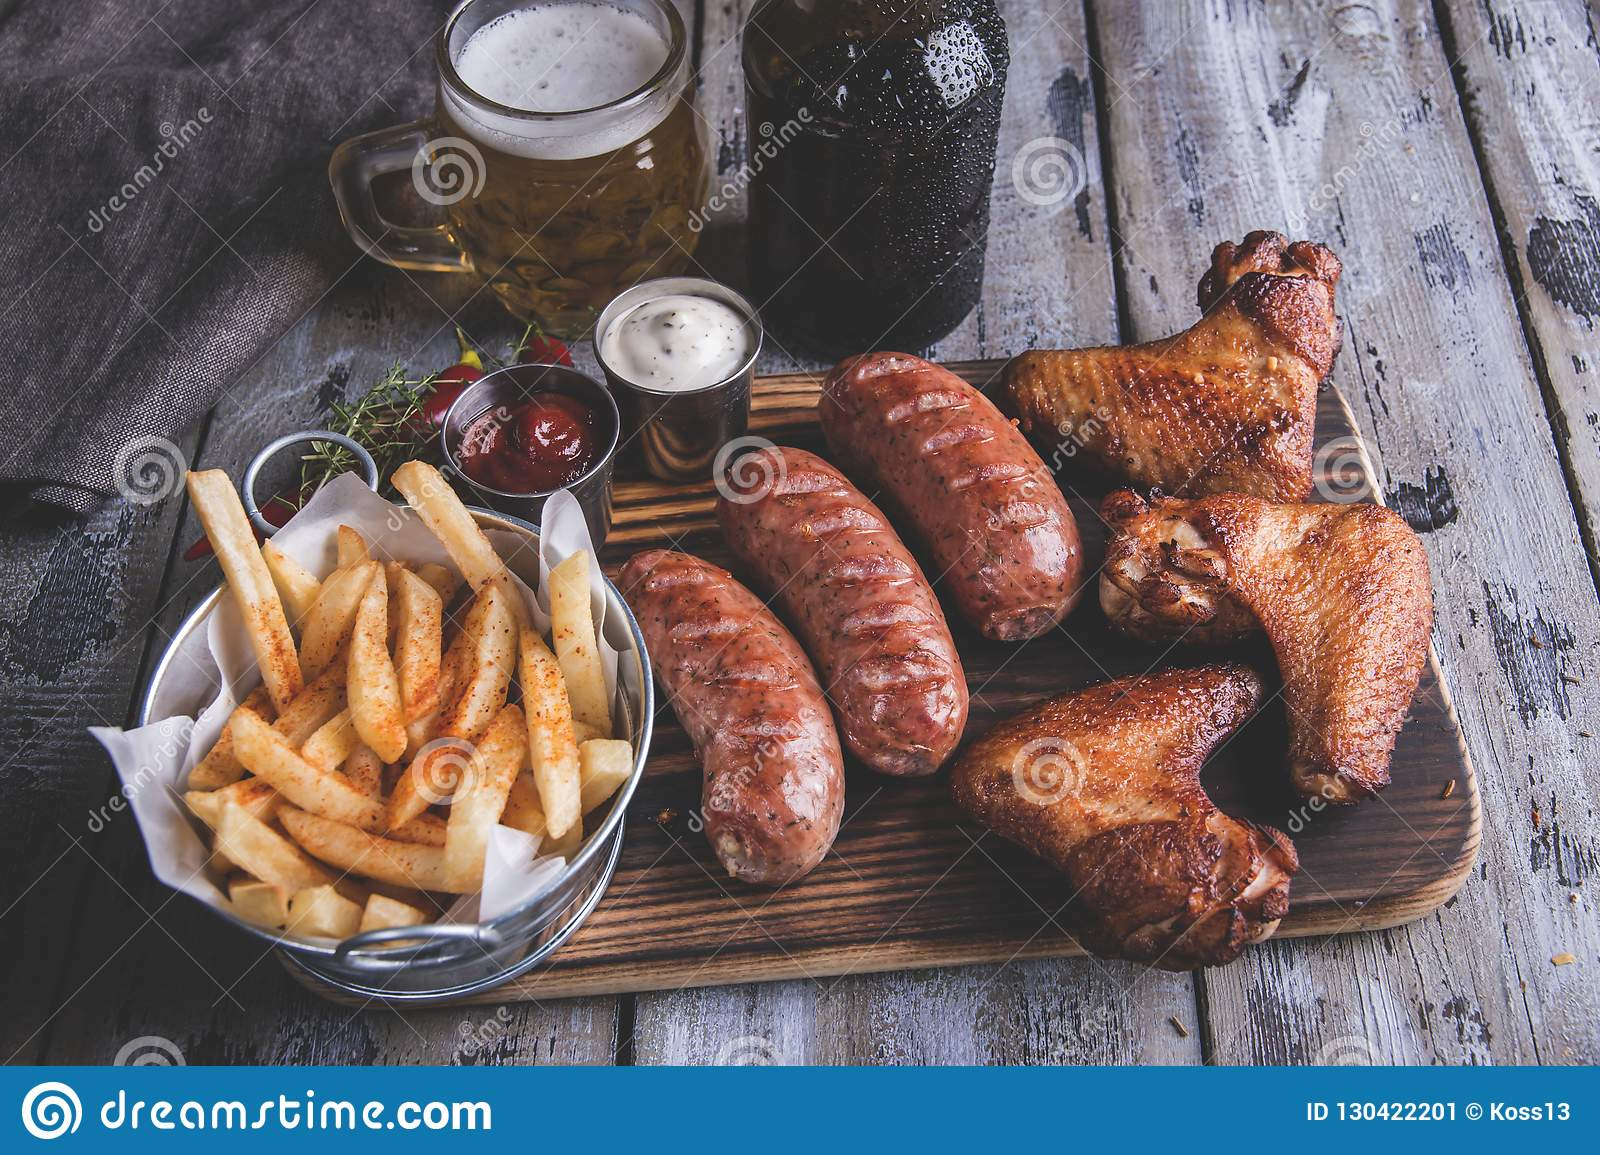 Fried chicken wings,grilled sausages, french fries, nuts, white and red sauce. food to beer